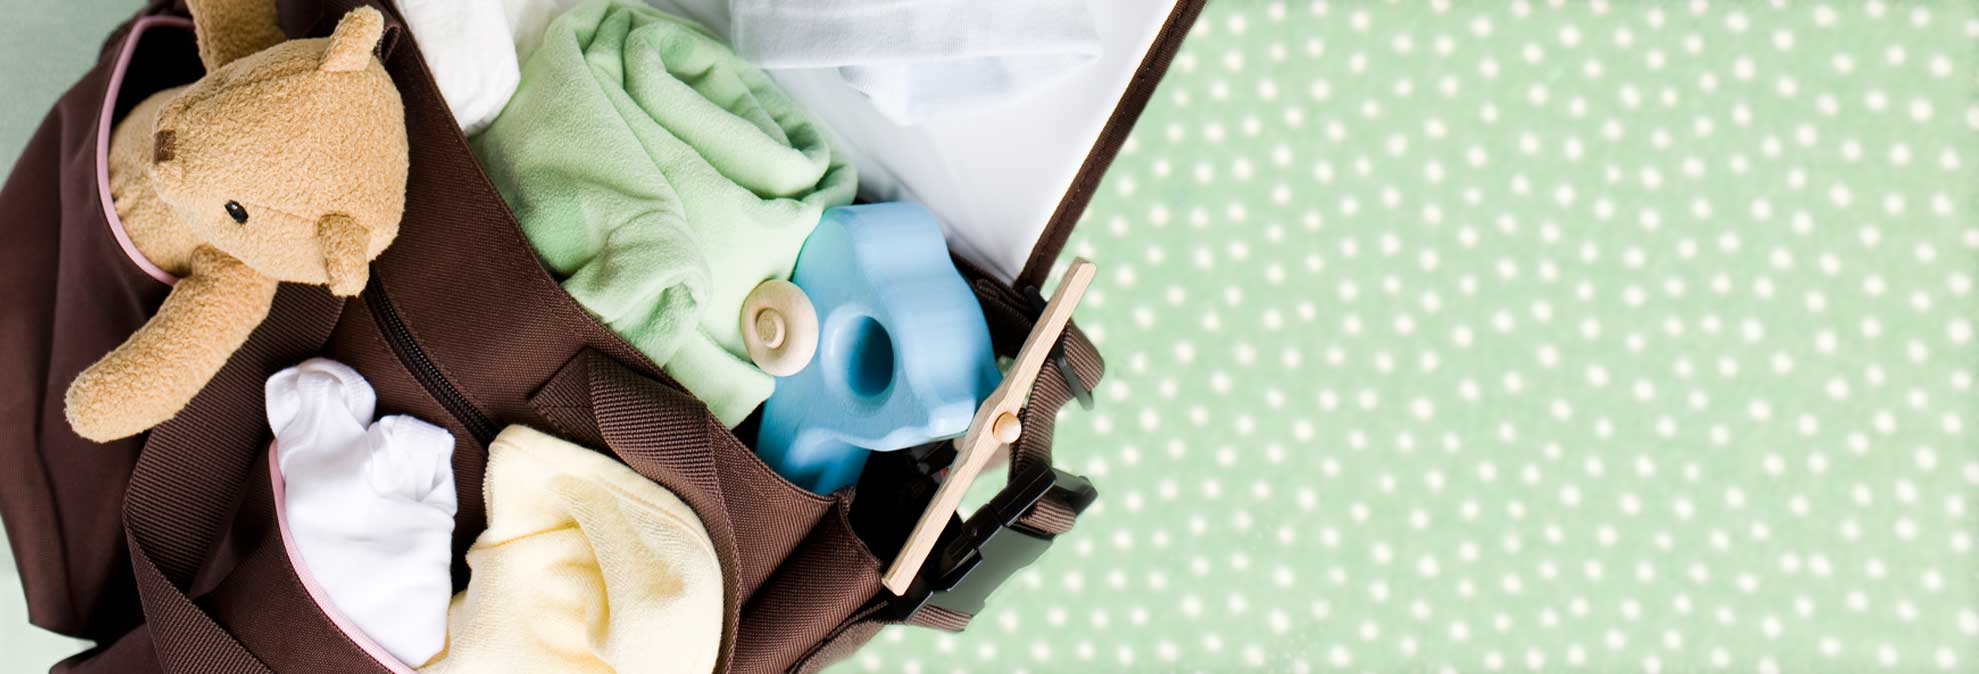 a47016c9f Best Diaper Bag Buying Guide - Consumer Reports